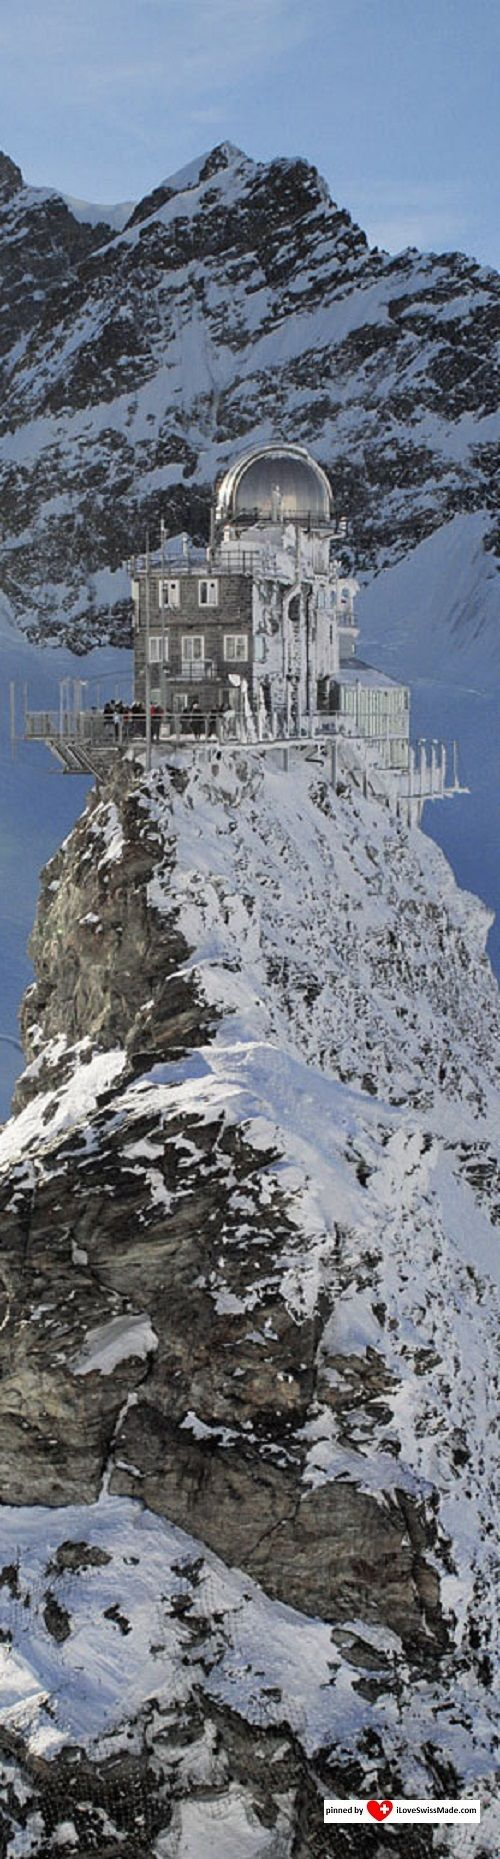 Jungfraujoch Top of Europe. SWITZERLAND  Photo Jungfrau.ch, adapted to Pinterest by iLoveSwissMade